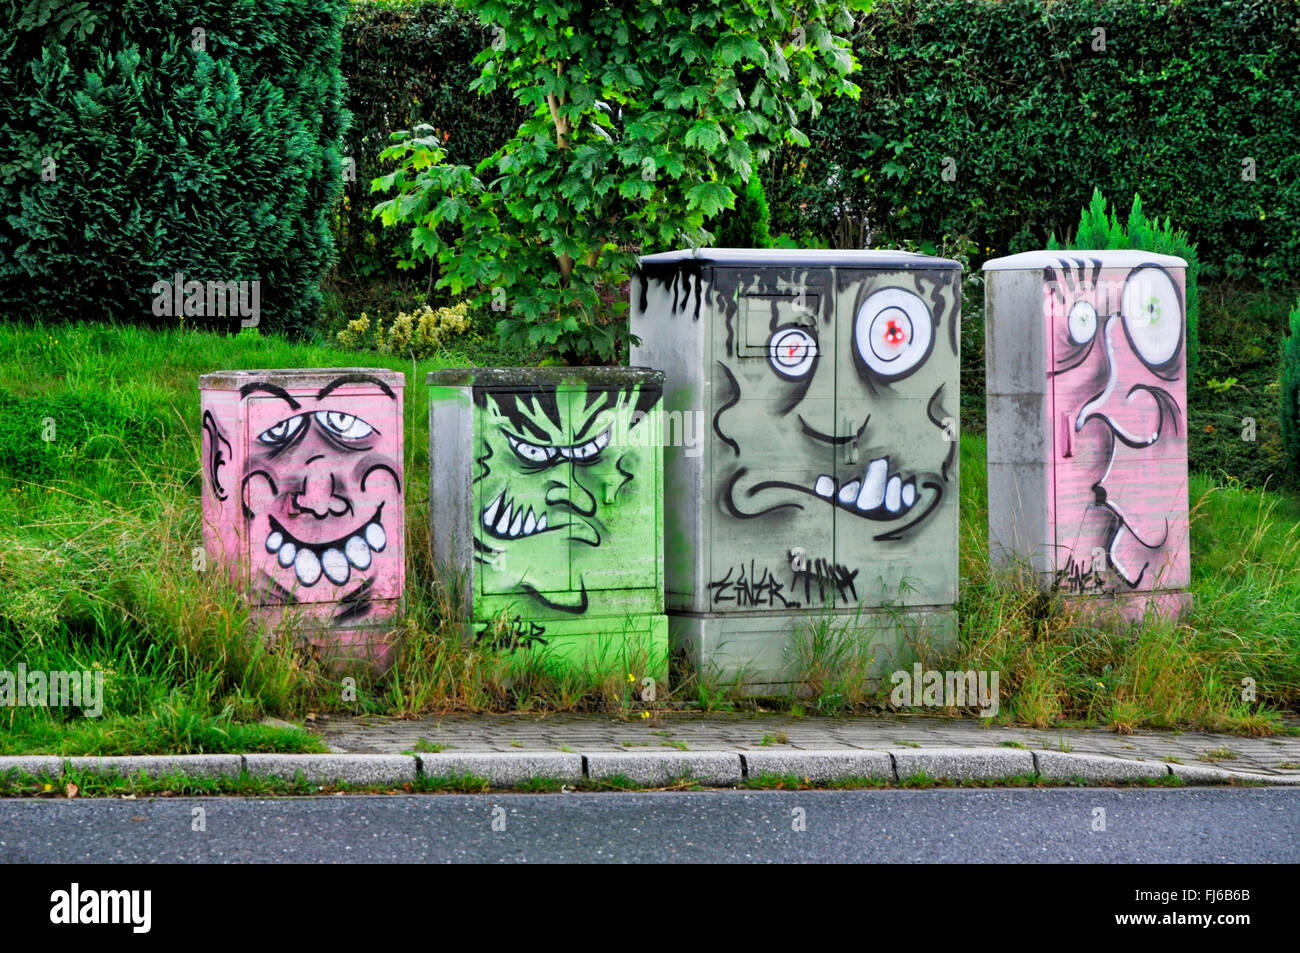 fuse box monsters, Germany, North Rhine-Westphalia, Ruhr Area, Bochum - Stock Image